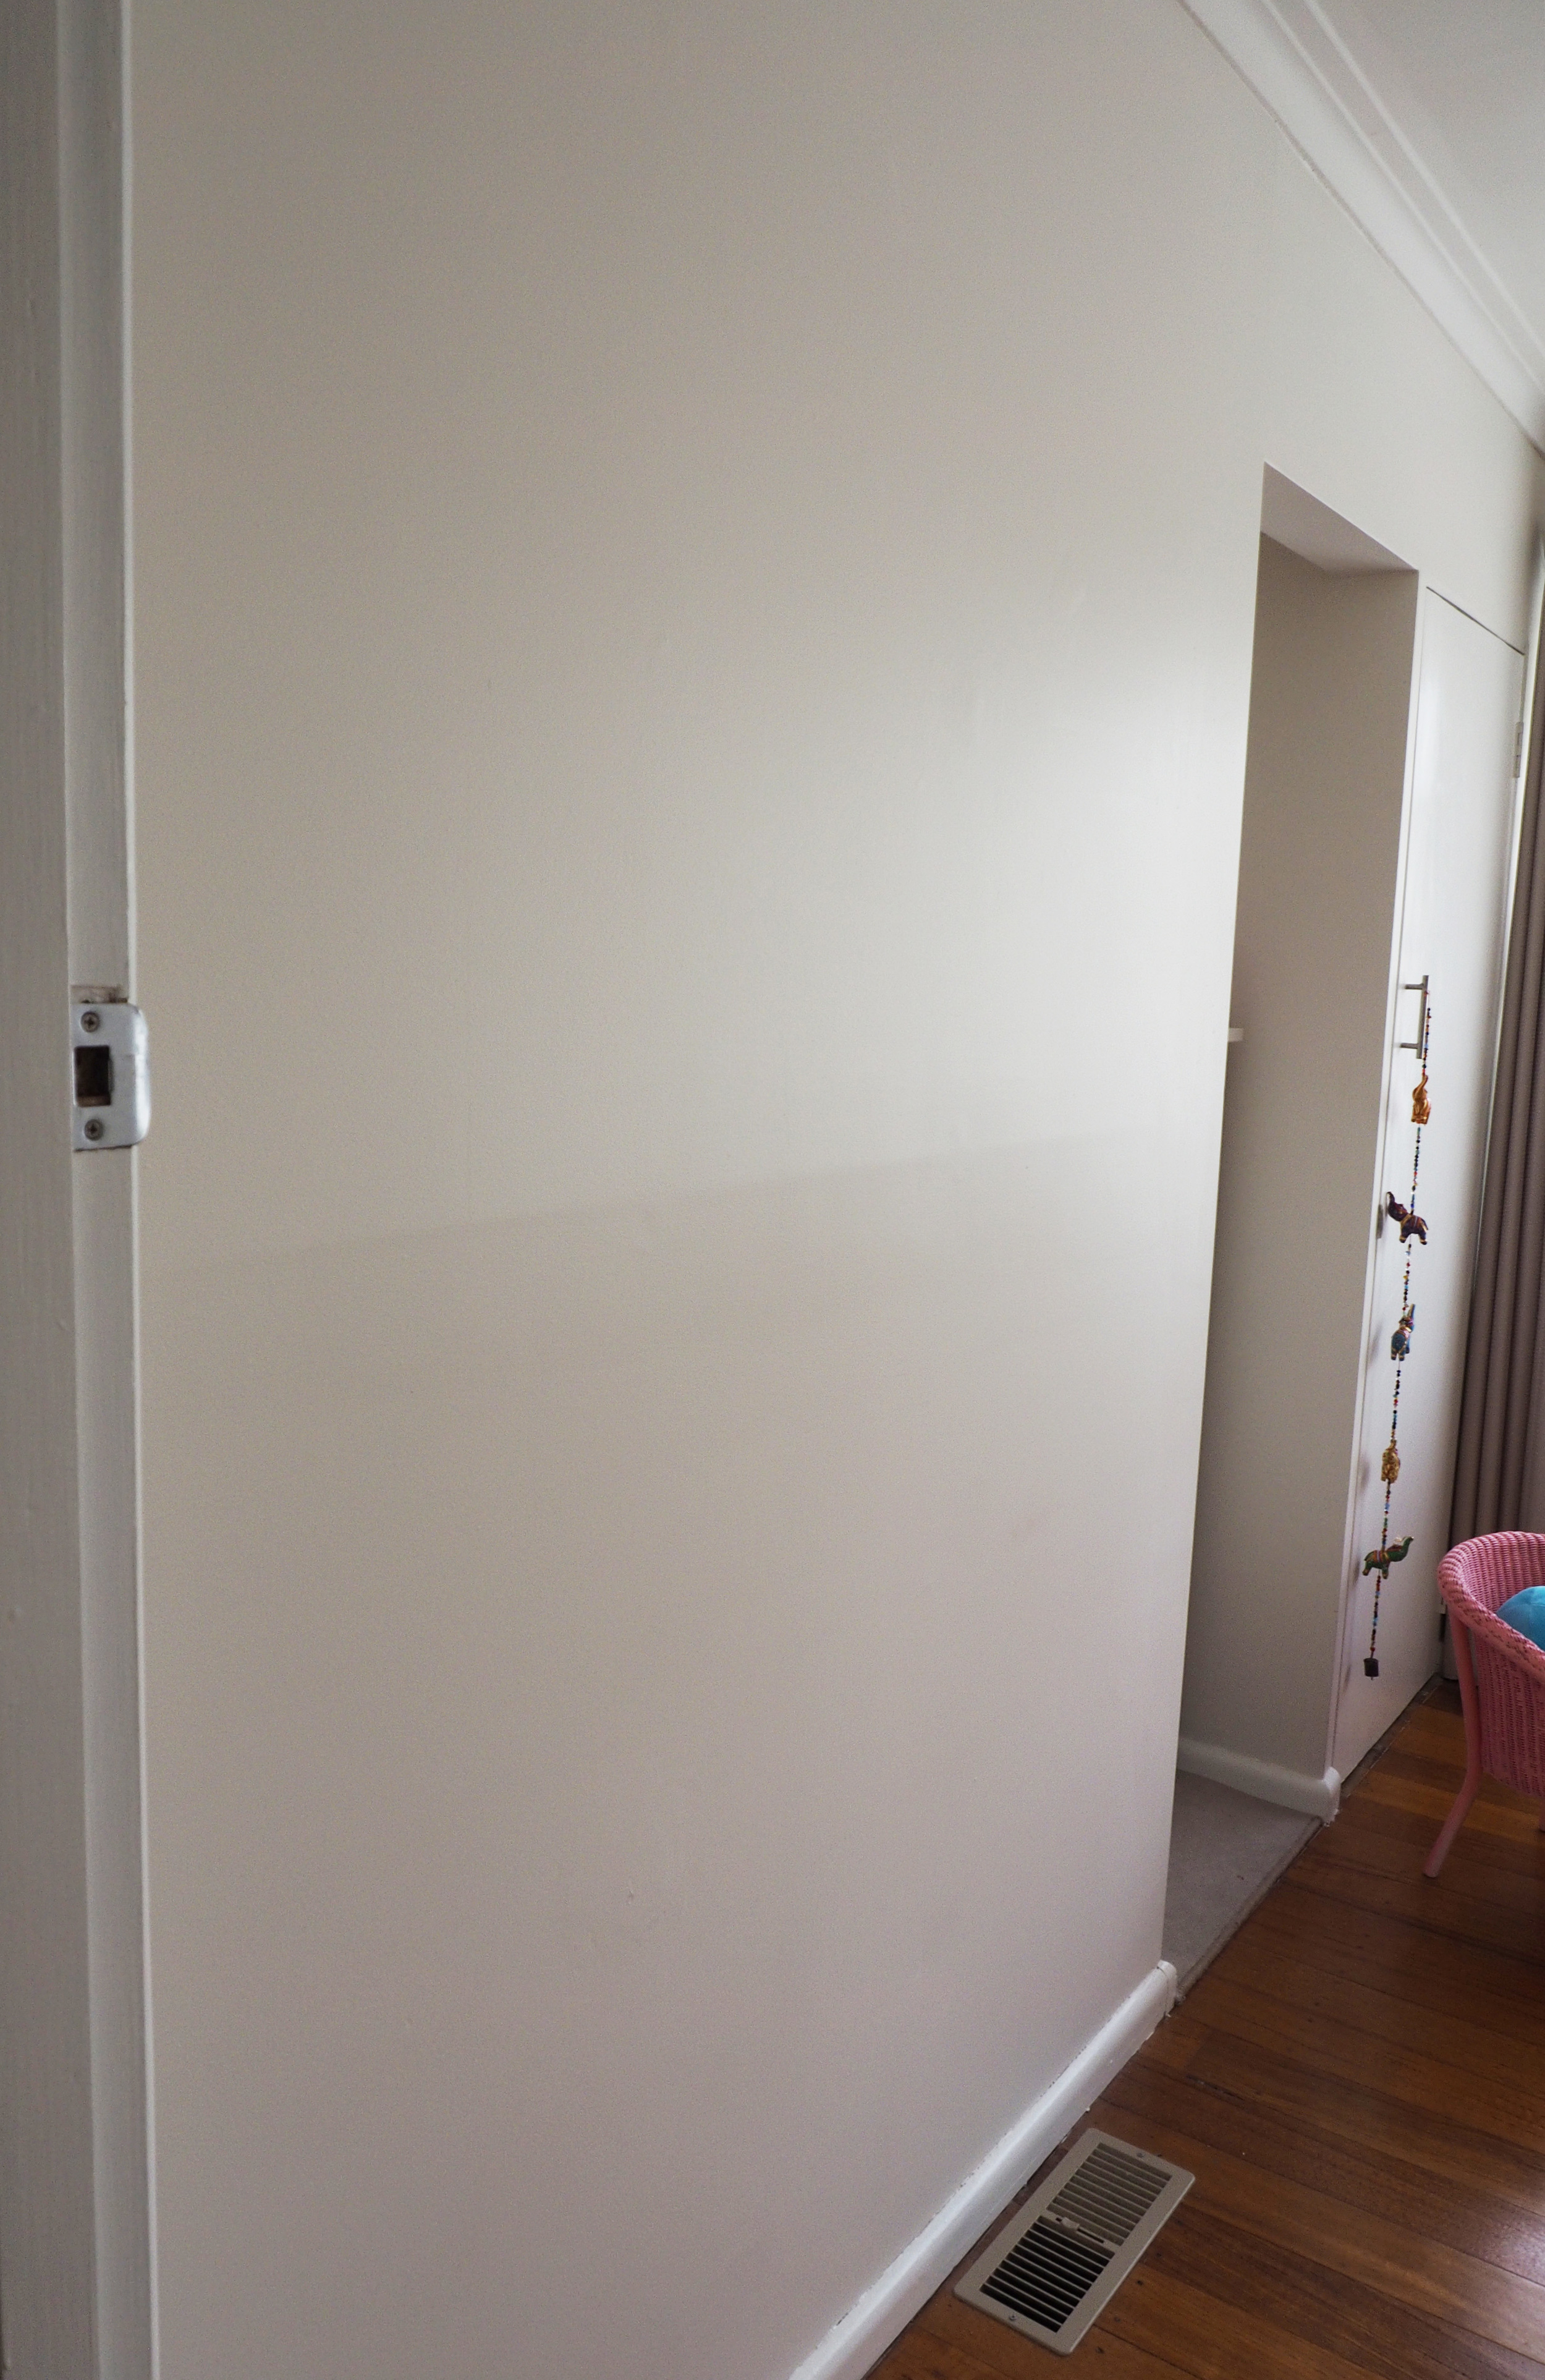 A blank wall in the bedroom is the perfect spot for creating a child's artwork display